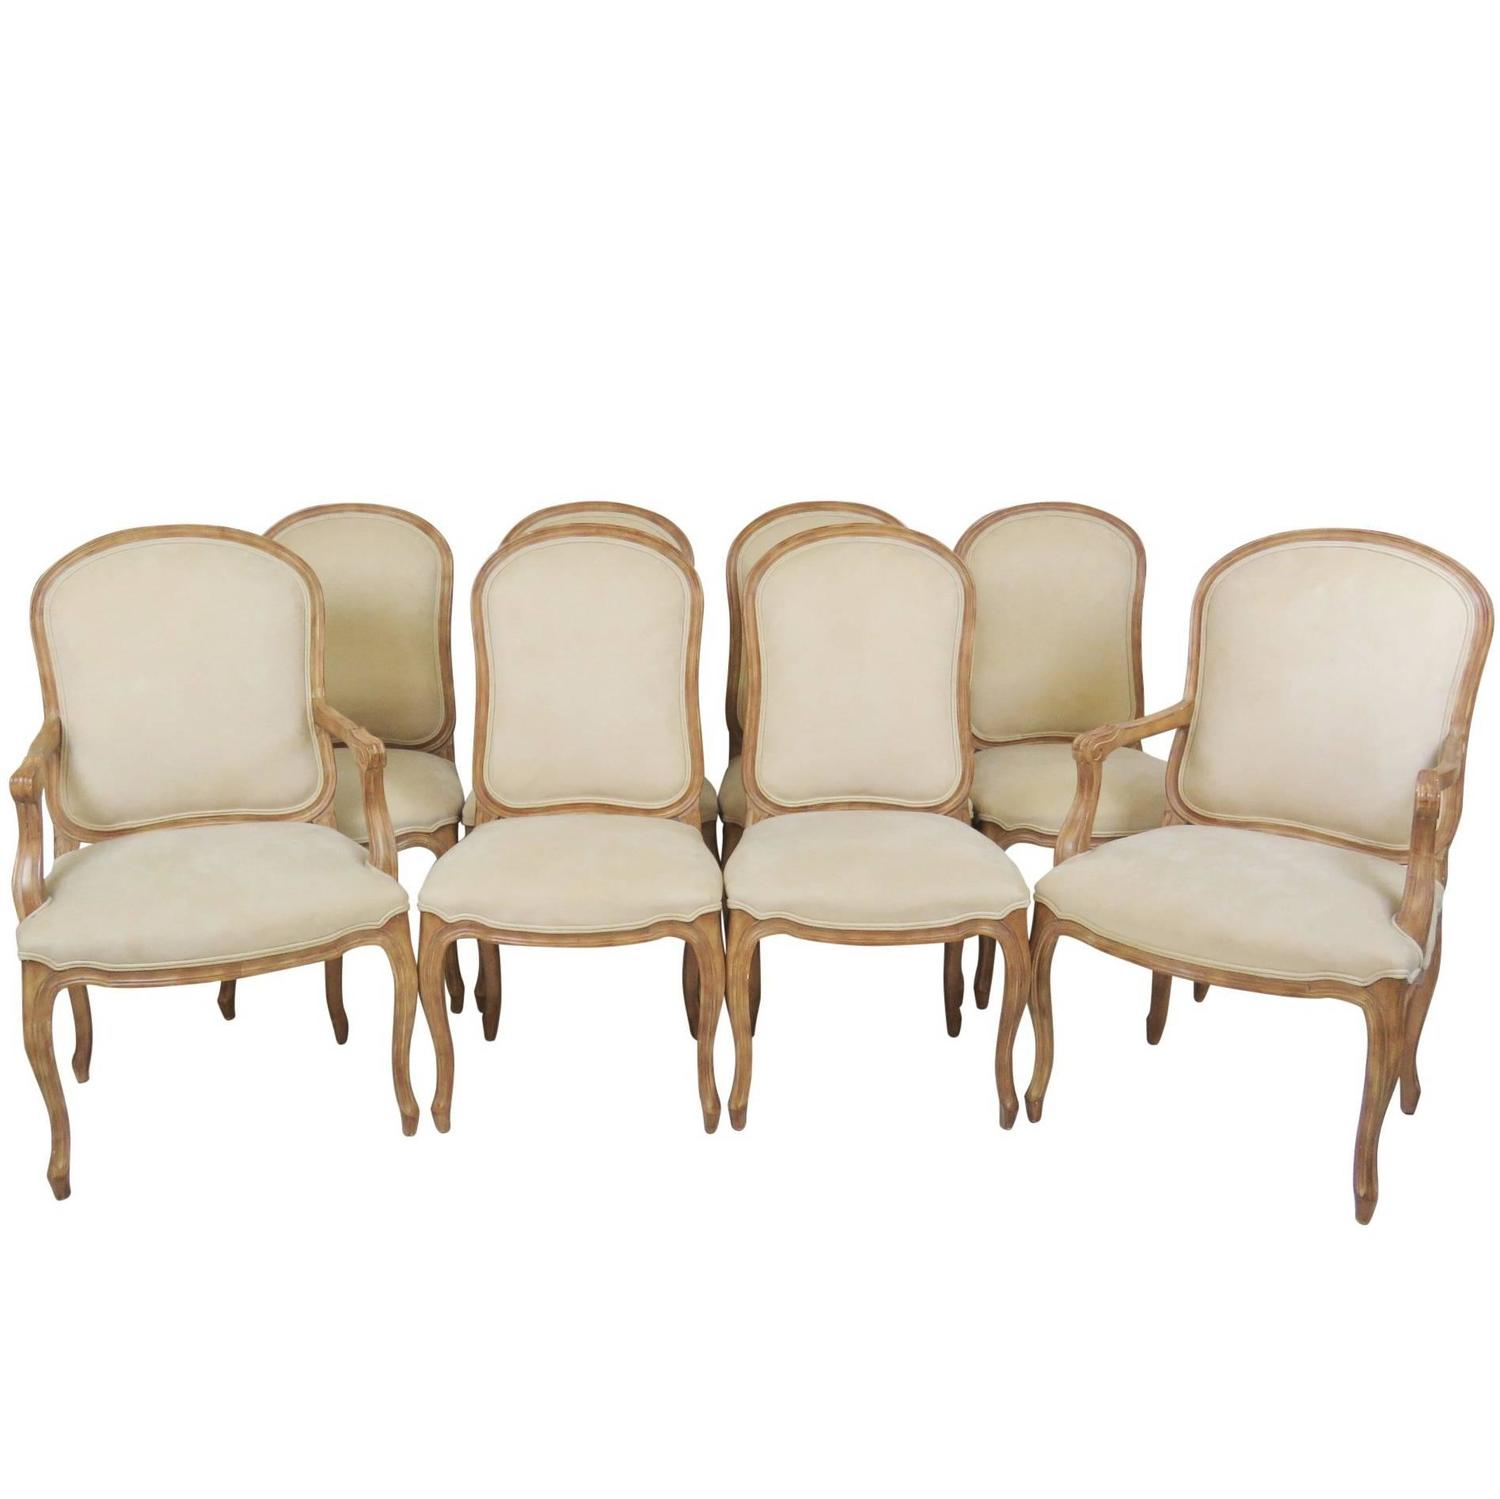 Eight louis xvi style upholstered dining chairs for sale for Upholstered dining chairs for sale